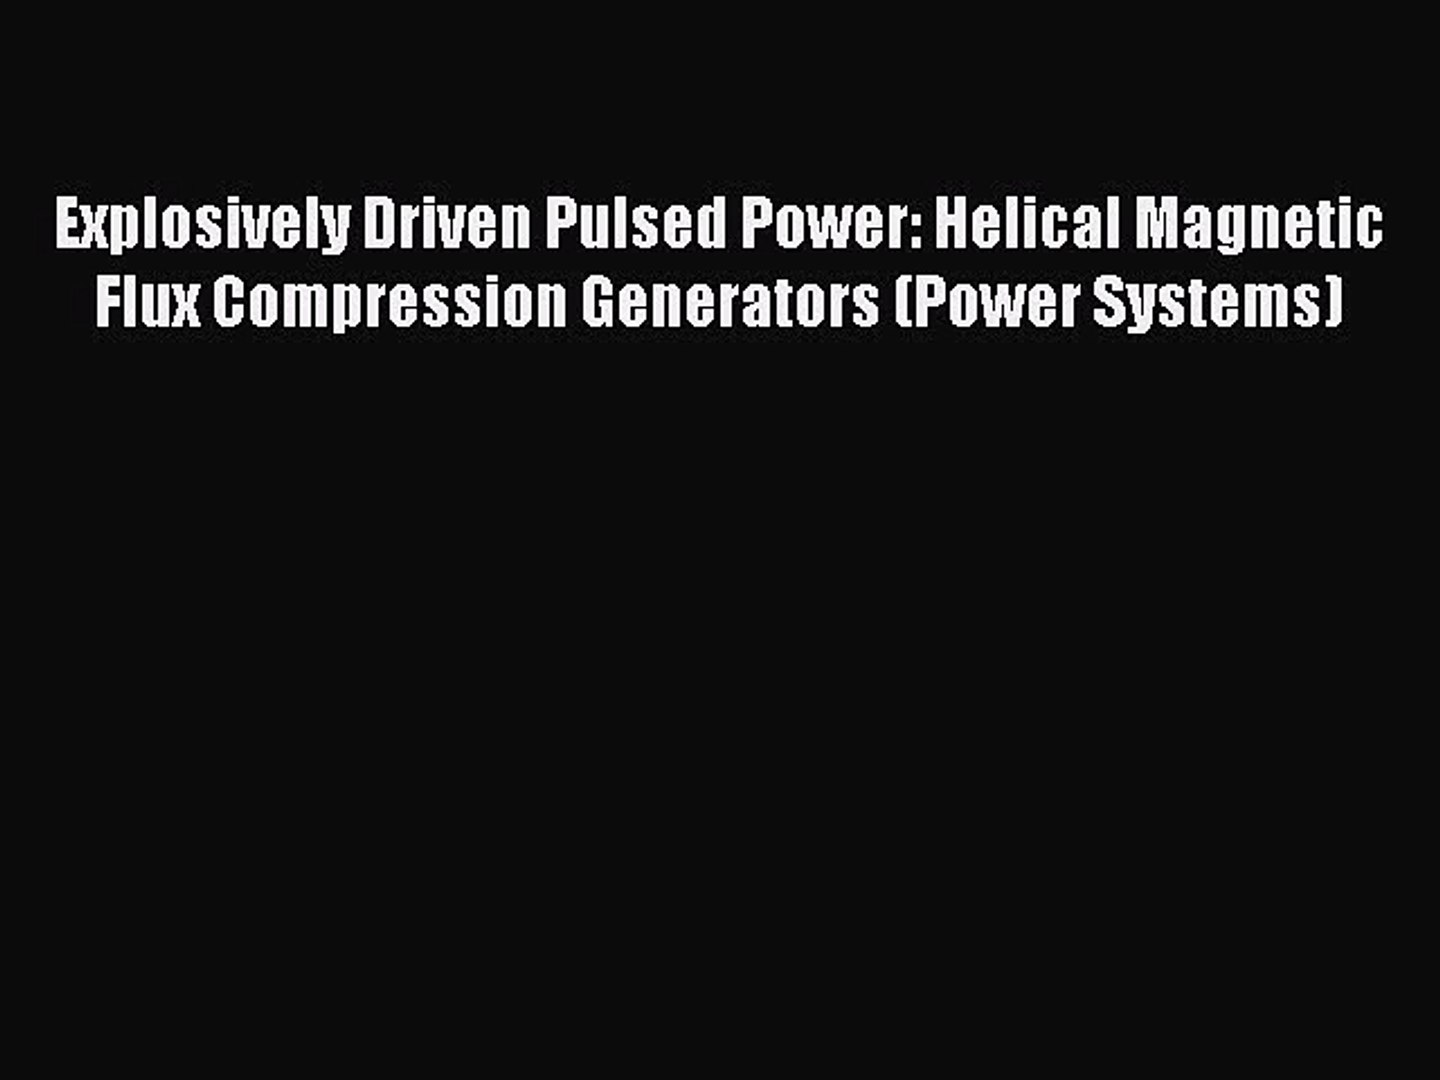 Explosively Driven Pulsed Power: Helical Magnetic Flux Compression Generators (Power Systems)